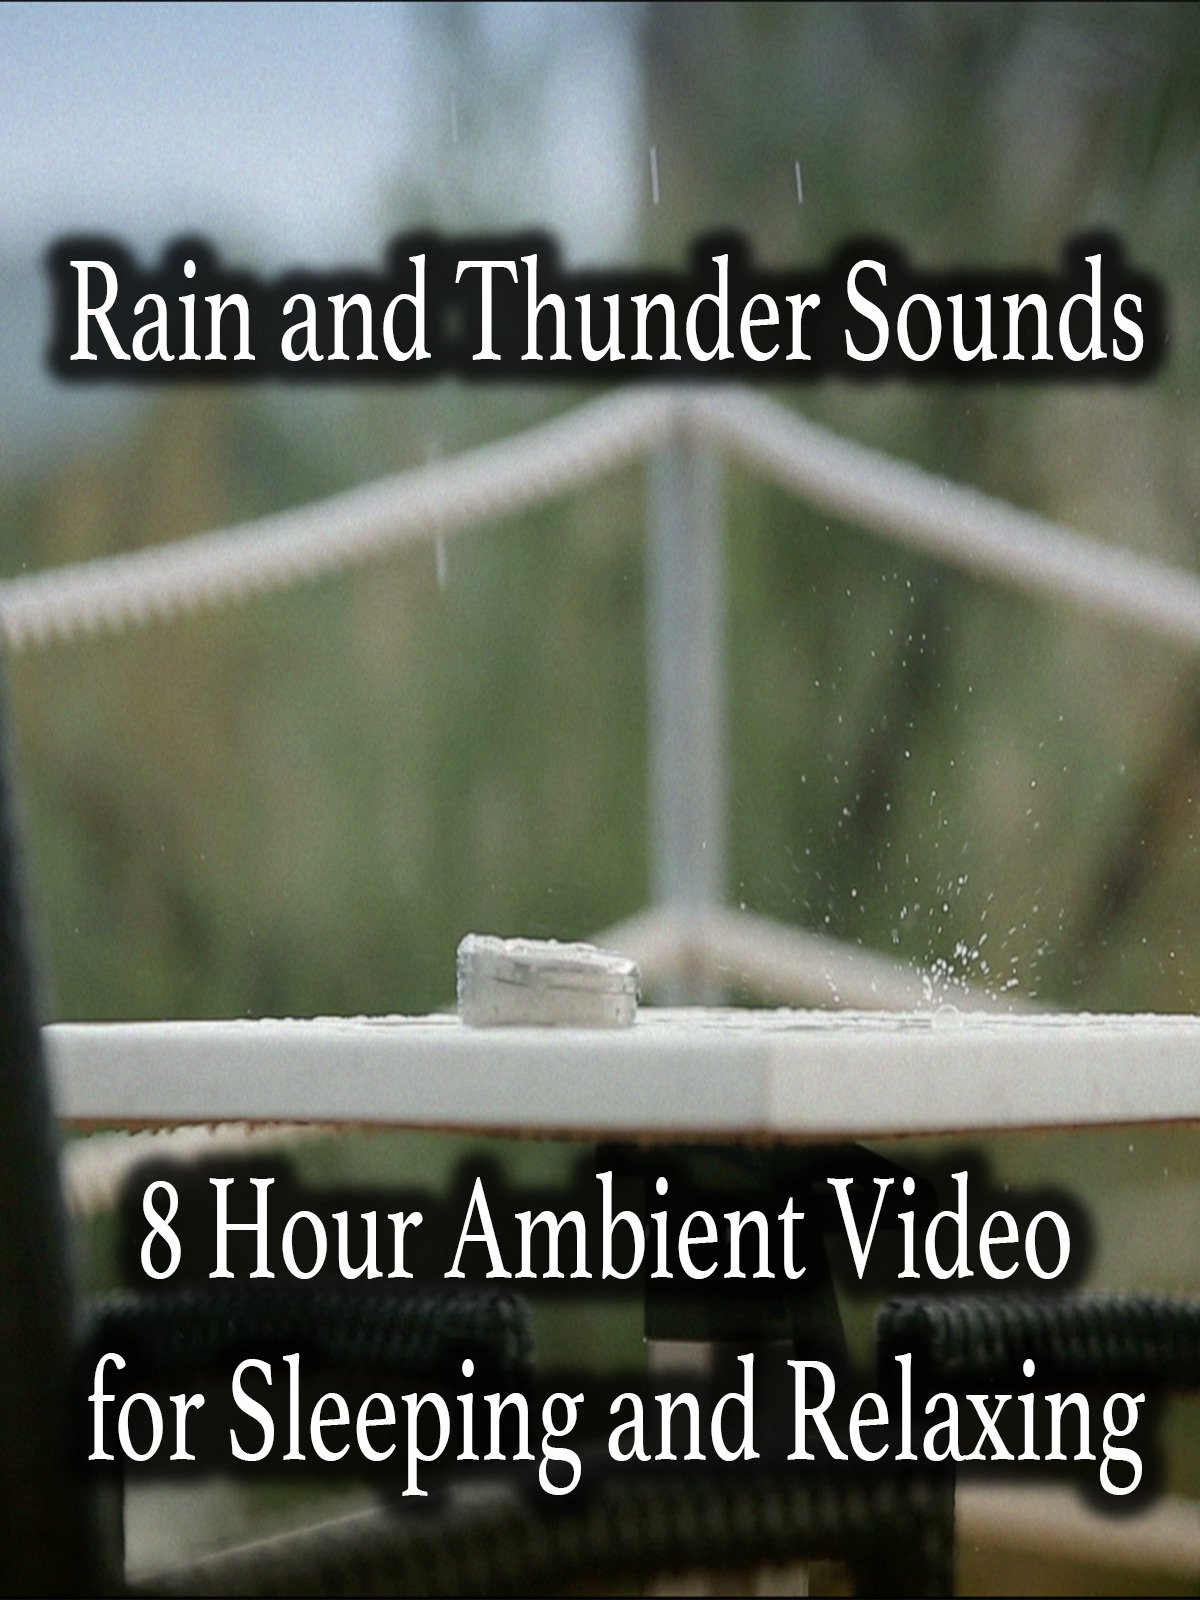 Rain and Thunder Sounds 8 Hour Ambient Video for Sleeping and Relaxing